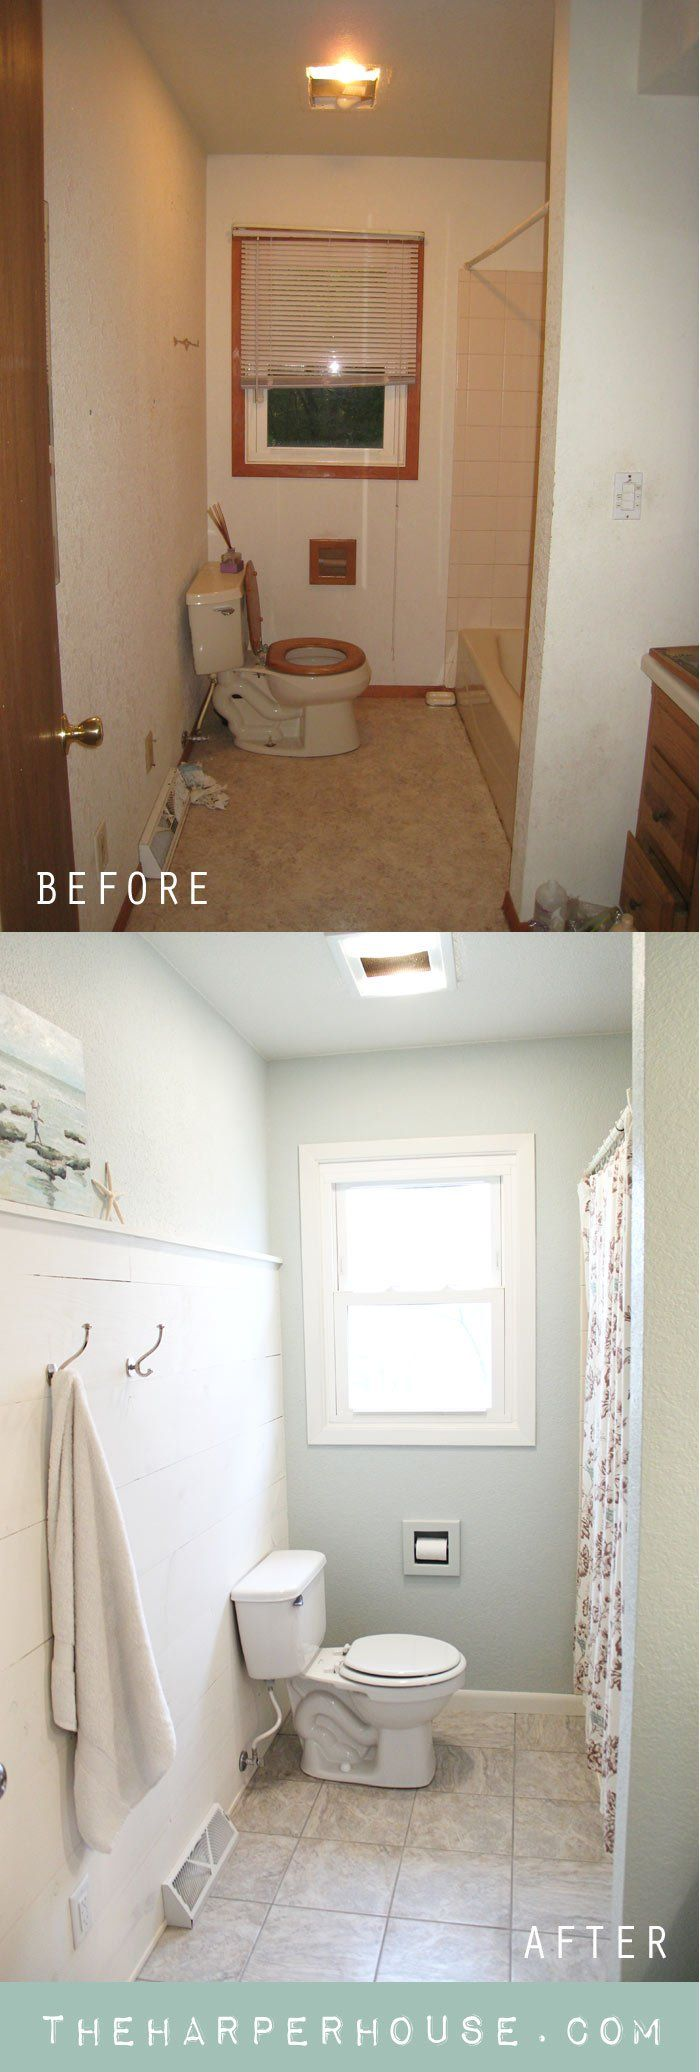 25 Best Flip This House Ideas On Pinterest Homes For Sell